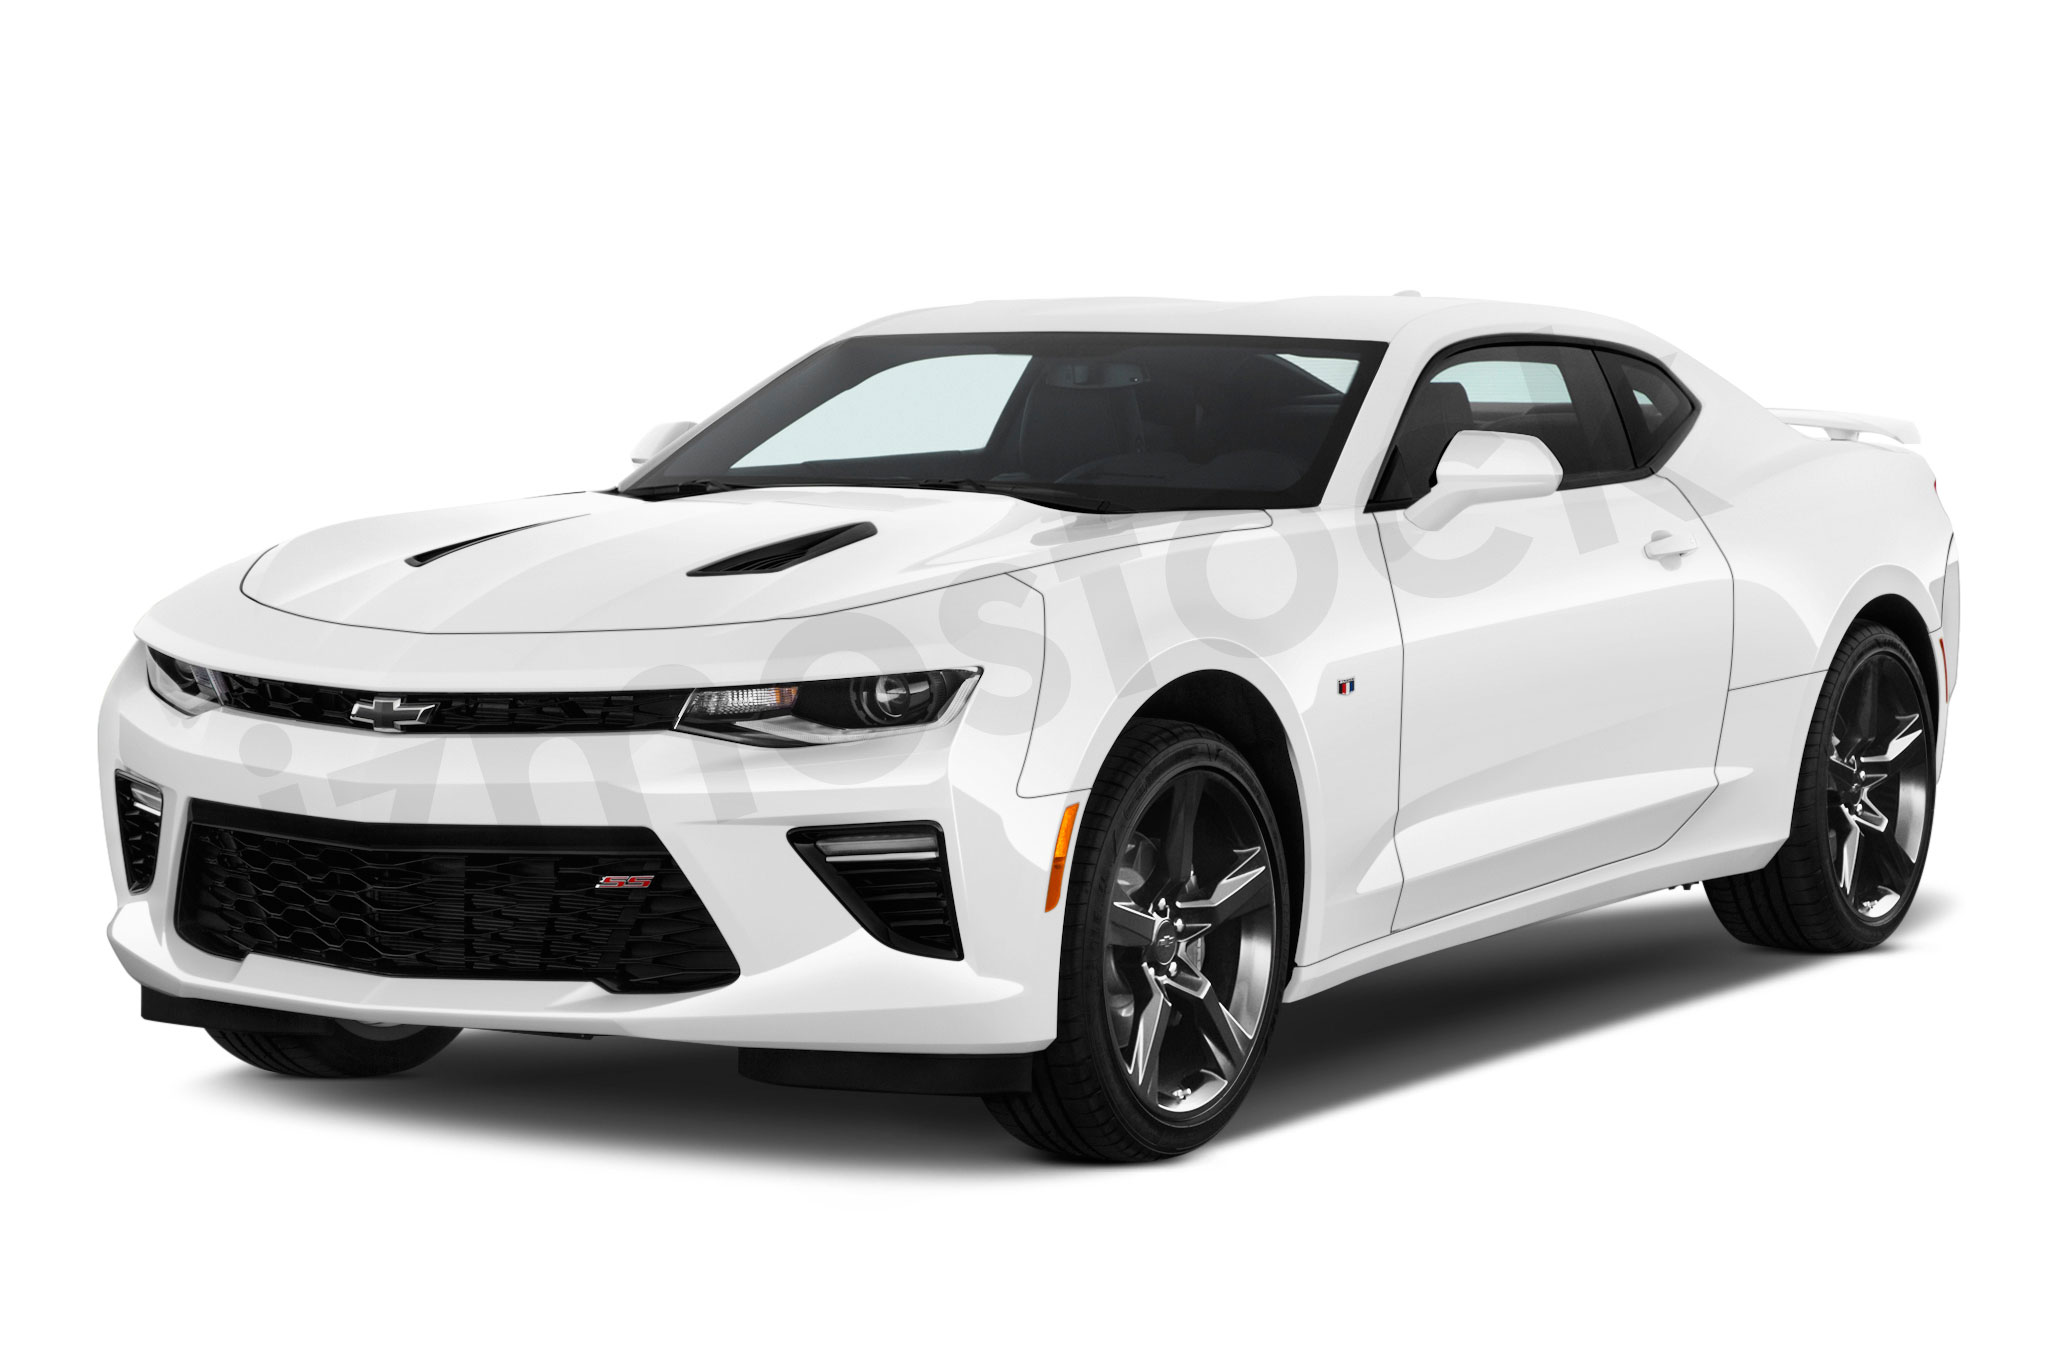 2017 Chevrolet Camaro Ss Review 50 Years Of The Iconic American Muscle Car